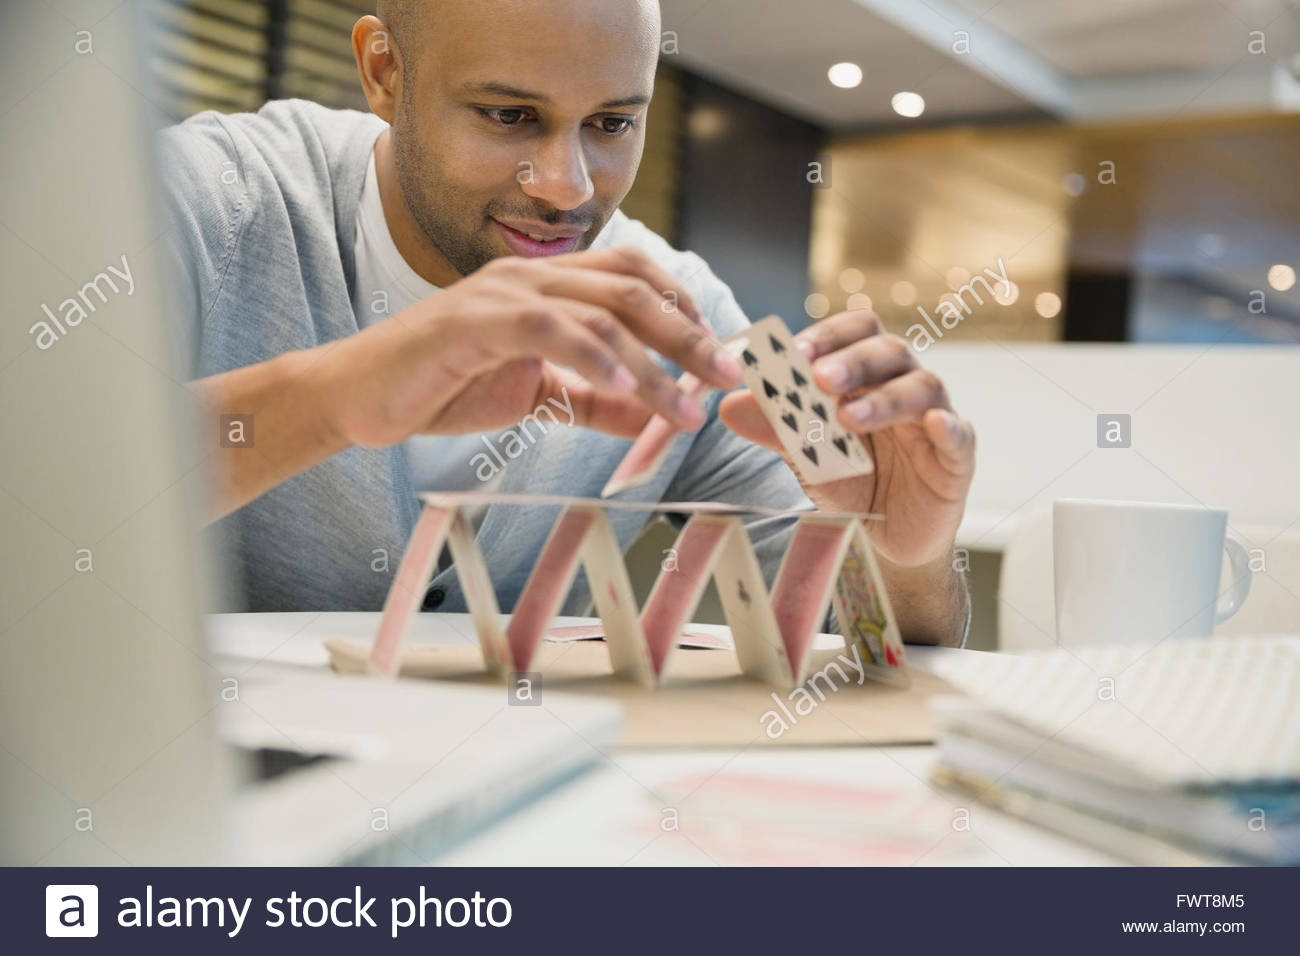 Businessman building a house of cards in office Stock Photo